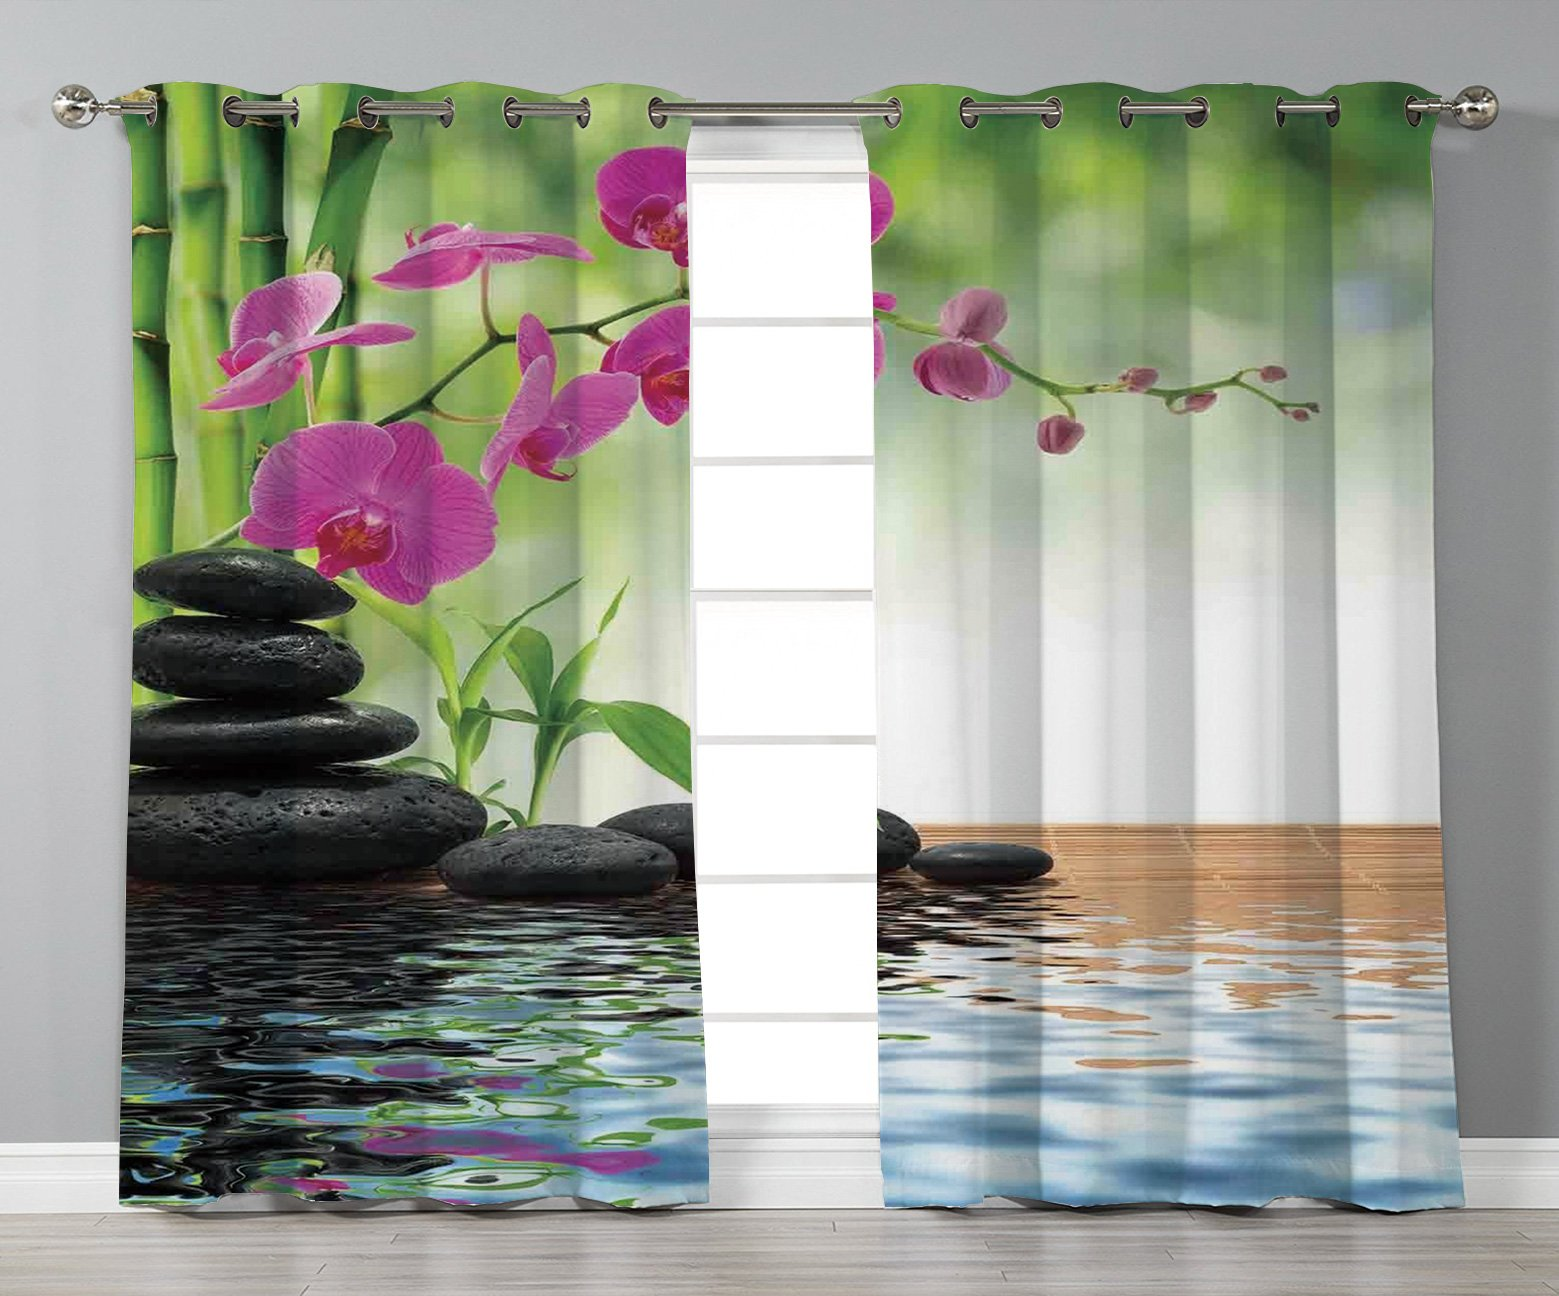 iPrint Satin Grommet Window Curtains,Spa Decor,Composition Bamboo Tree Floor Mat Orchid Stones Wellbeing Greenery,2 Panel Set Window Drapes,for Living Room Bedroom Kitchen Cafe